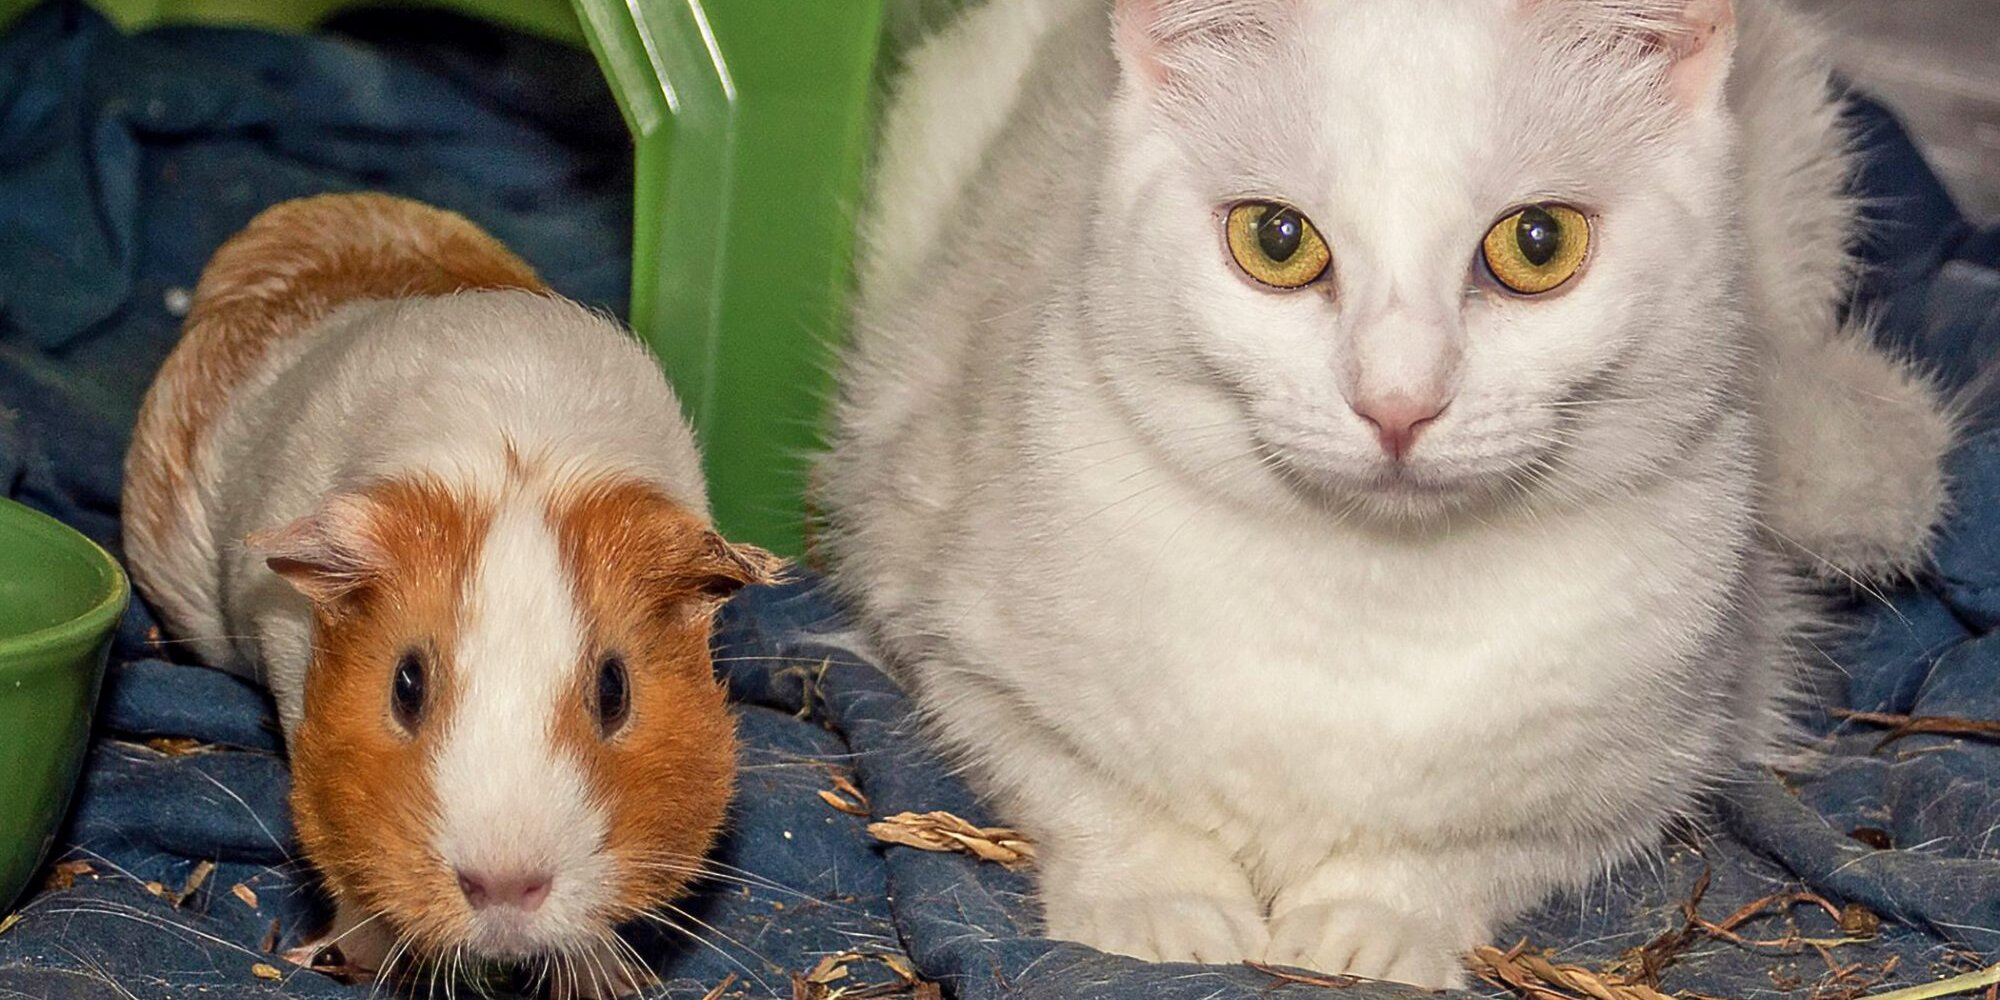 Cat and Guinea Pig Besties Were Surrendered Together—But Now They Have a New Forever Home!